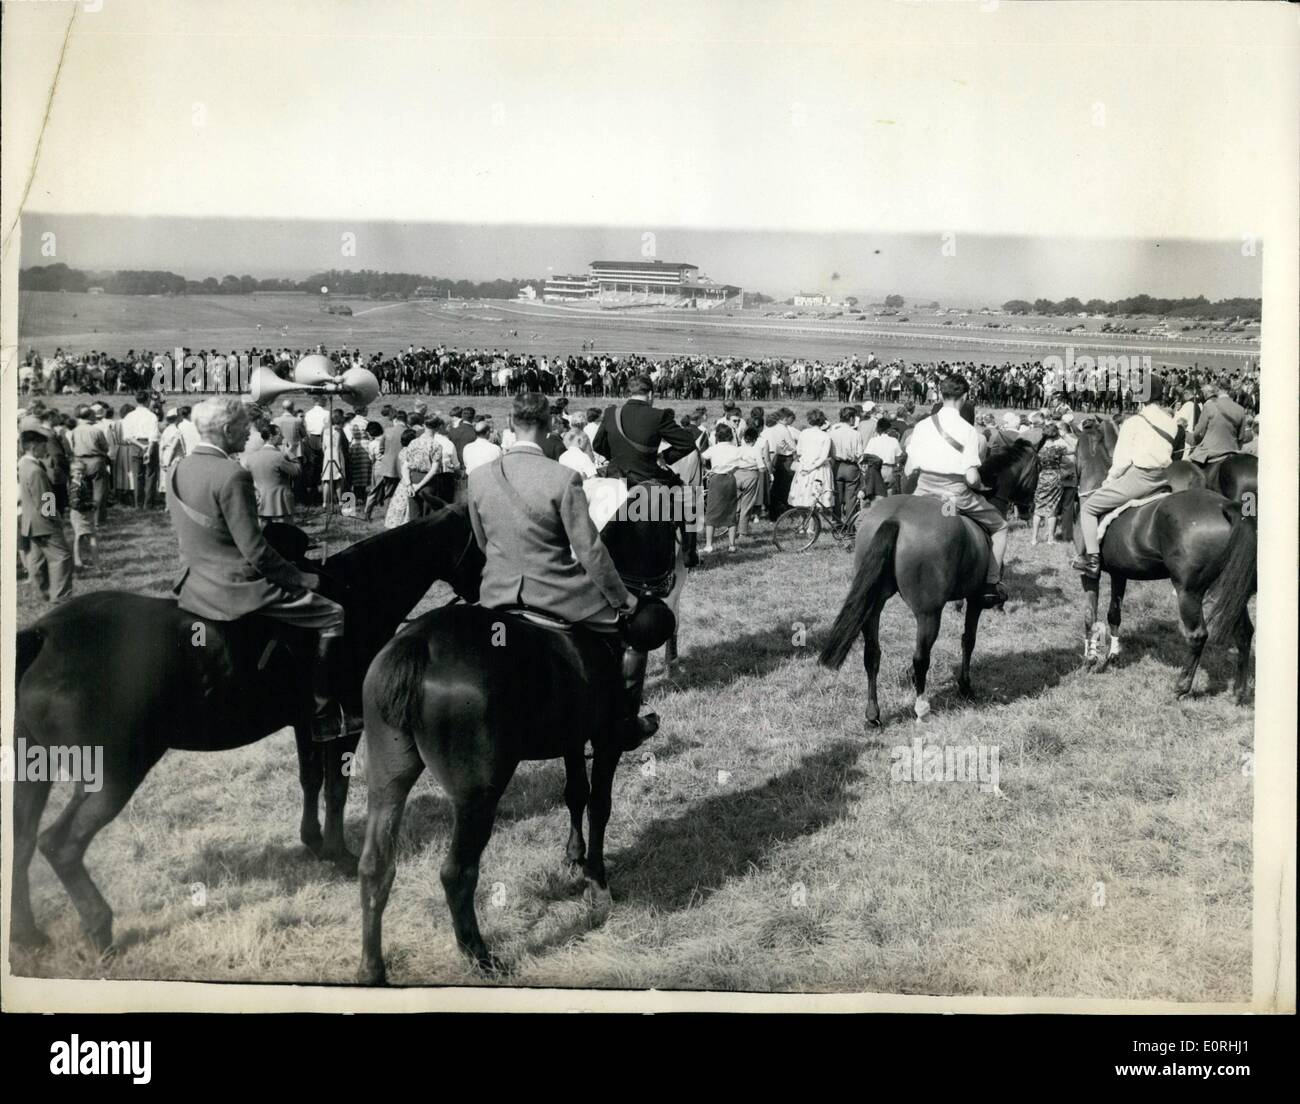 Sep. 09, 1959 - Horseman's Sunday Service At Epsom Downs: About six hundred riders took part in the annual Horseman's Sunday service held at Tattenham Corner on Epsom Downs today. The service was conducted by the vicar of Burgh Heath, and the Bishop of Guildford, the Rt. Rev. Dr. Ivor Watkins made an address and blessed the gathering. Photo shows T A general view during the service at Tattenham Corner on Epsom Downs today. The racecourse grandstand can be seen in the background. - Stock Image